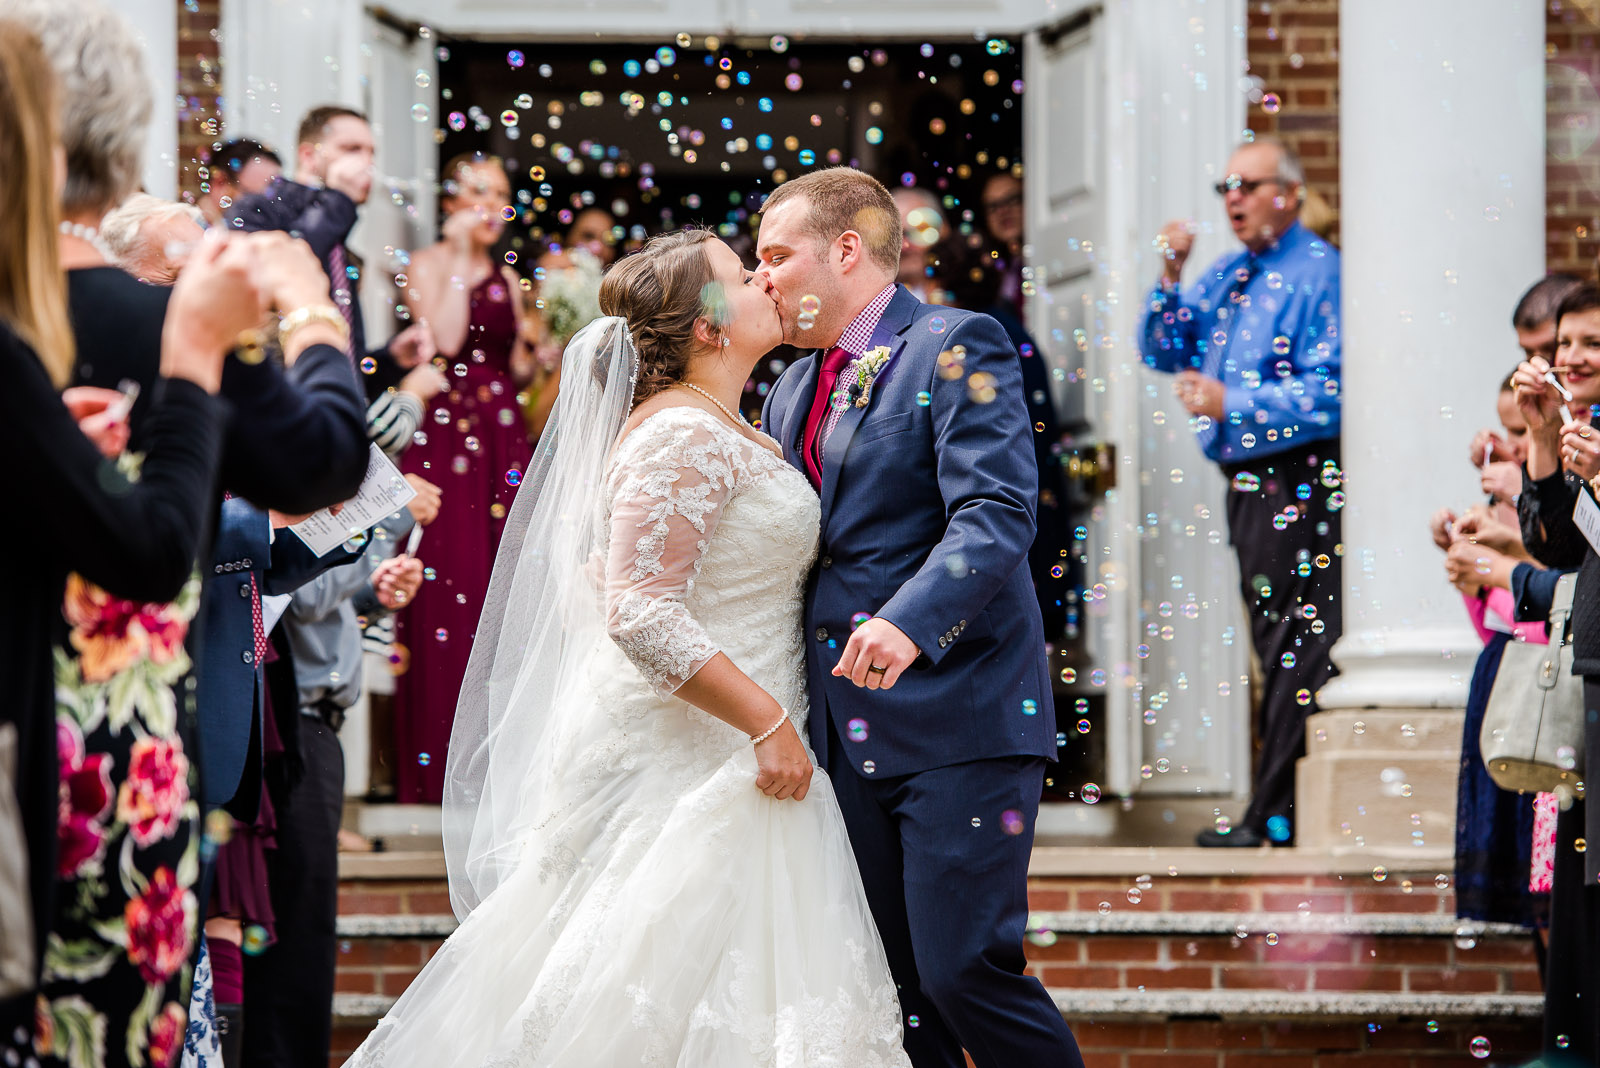 Eric_and_Christy_Photography_Blog_2018_Wed_moments-61